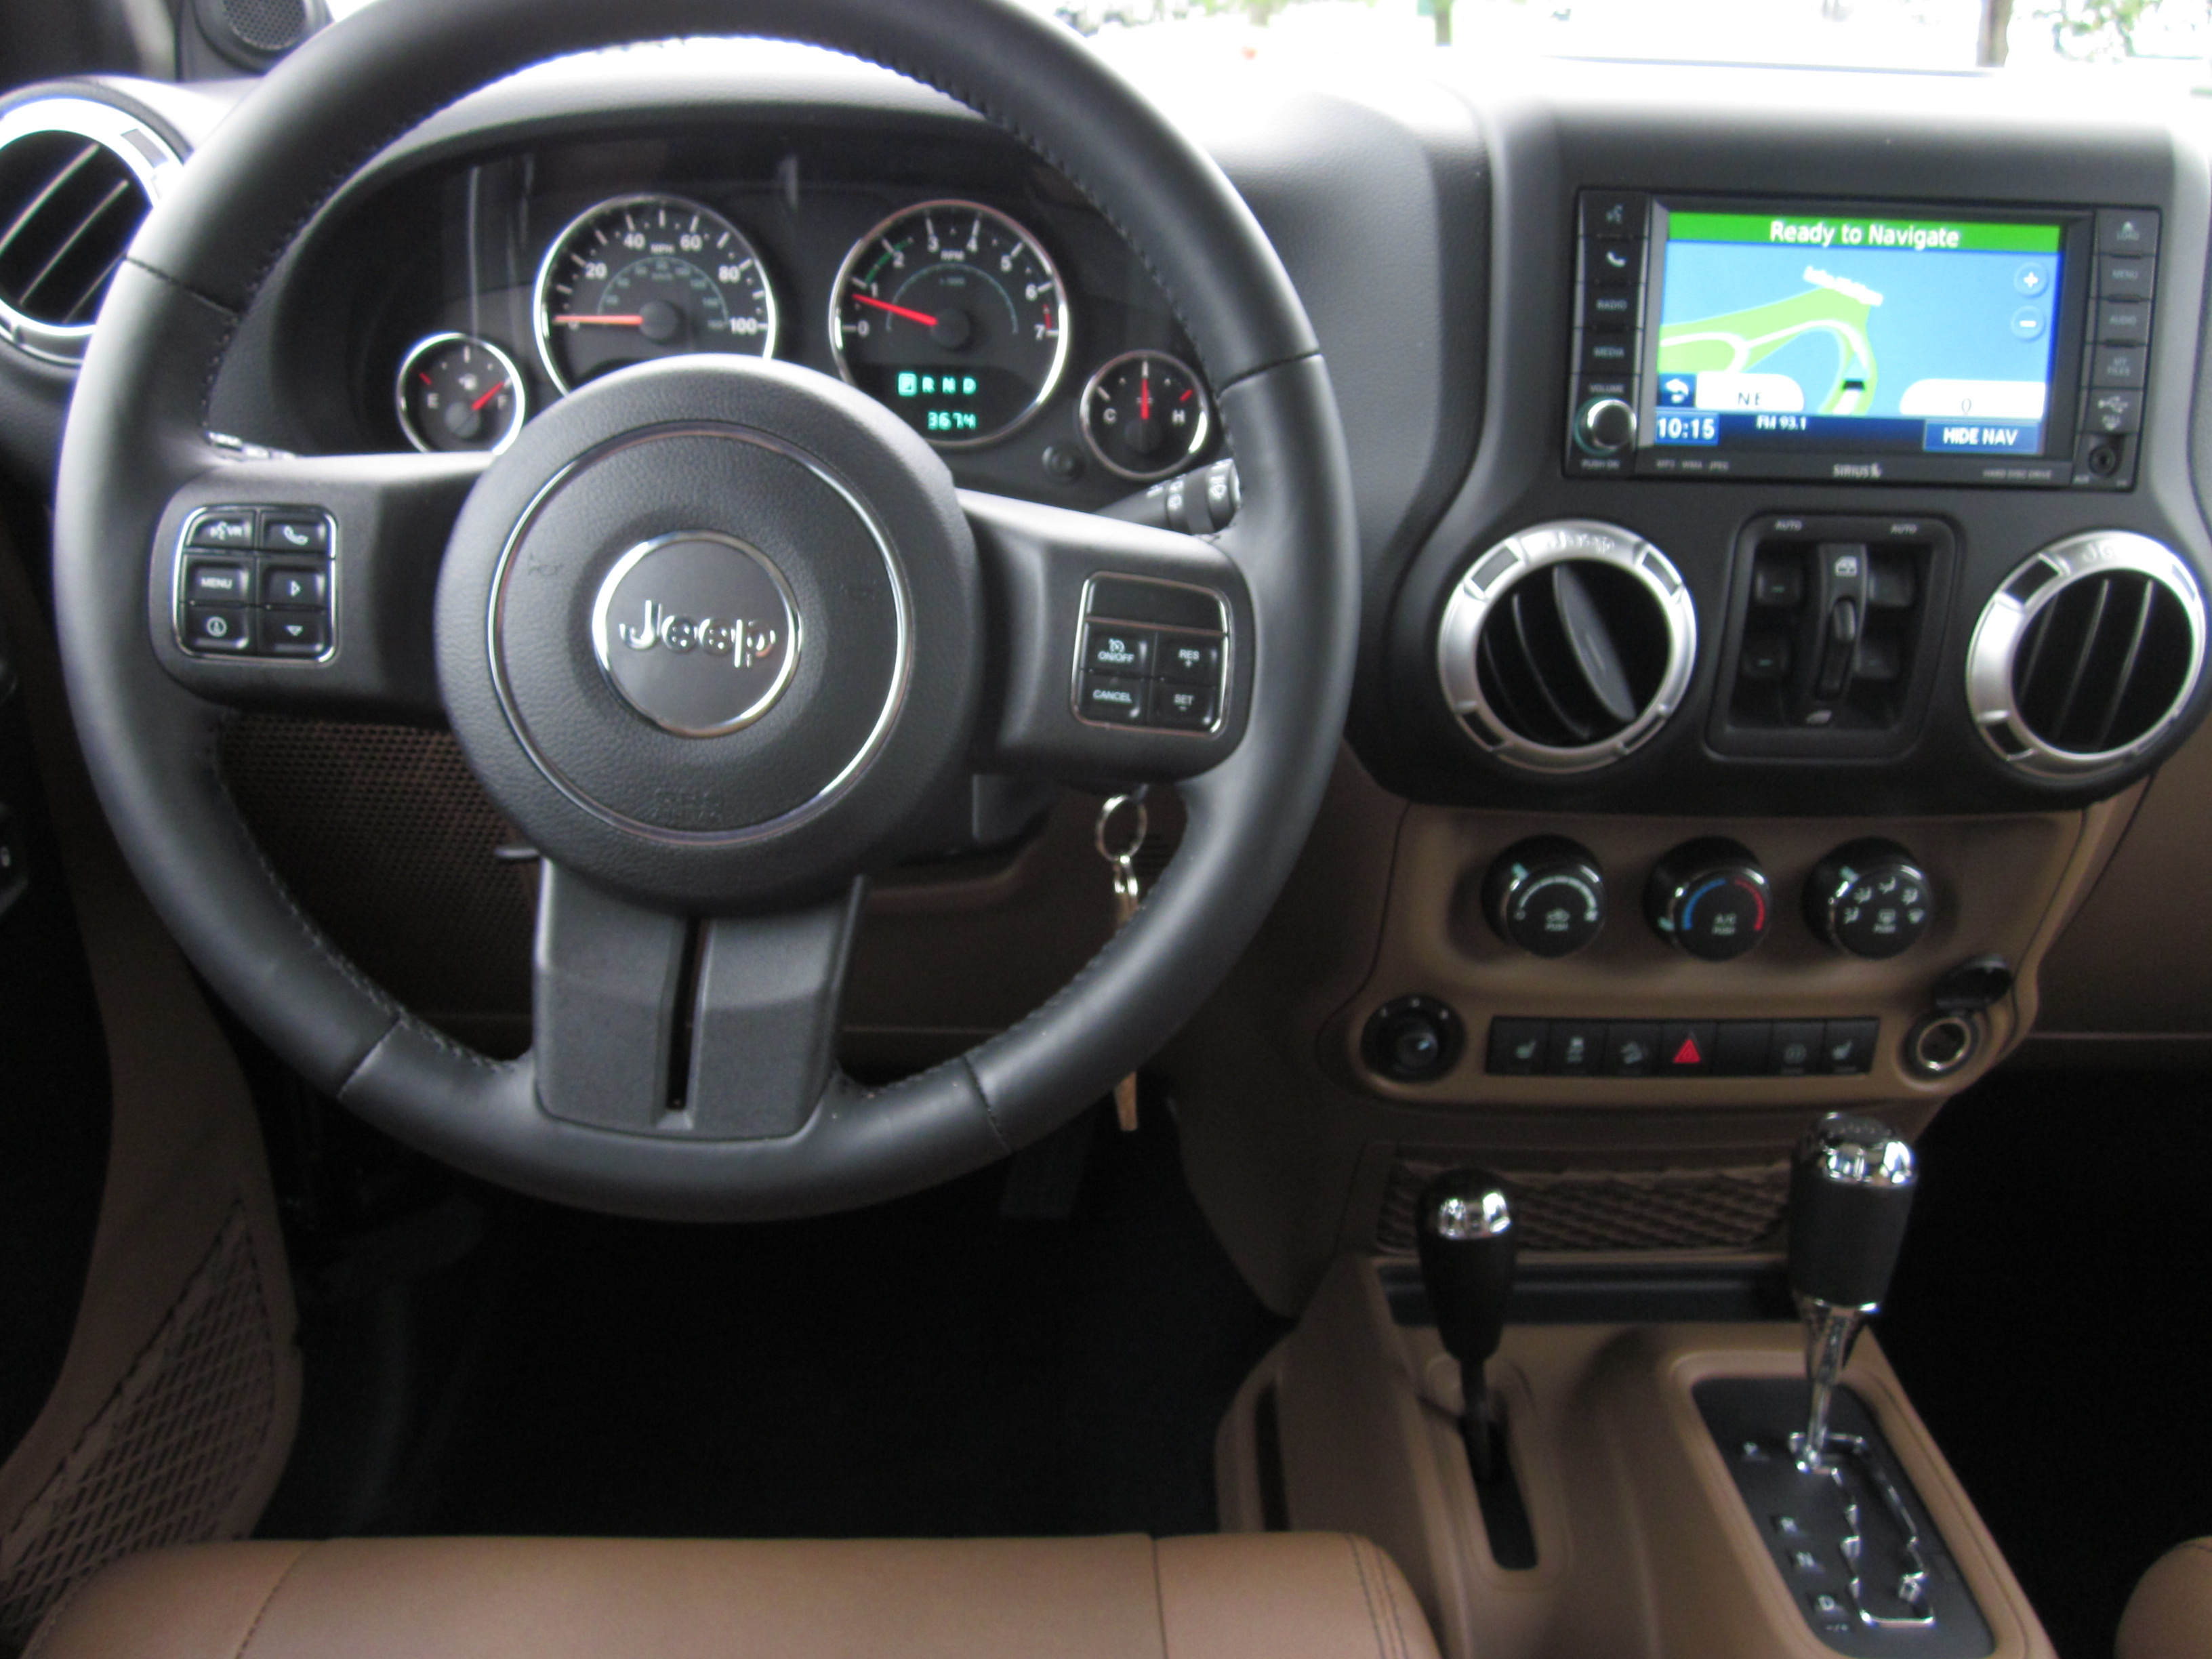 2012 Jeep Wrangler Unlimited Review And Road Test